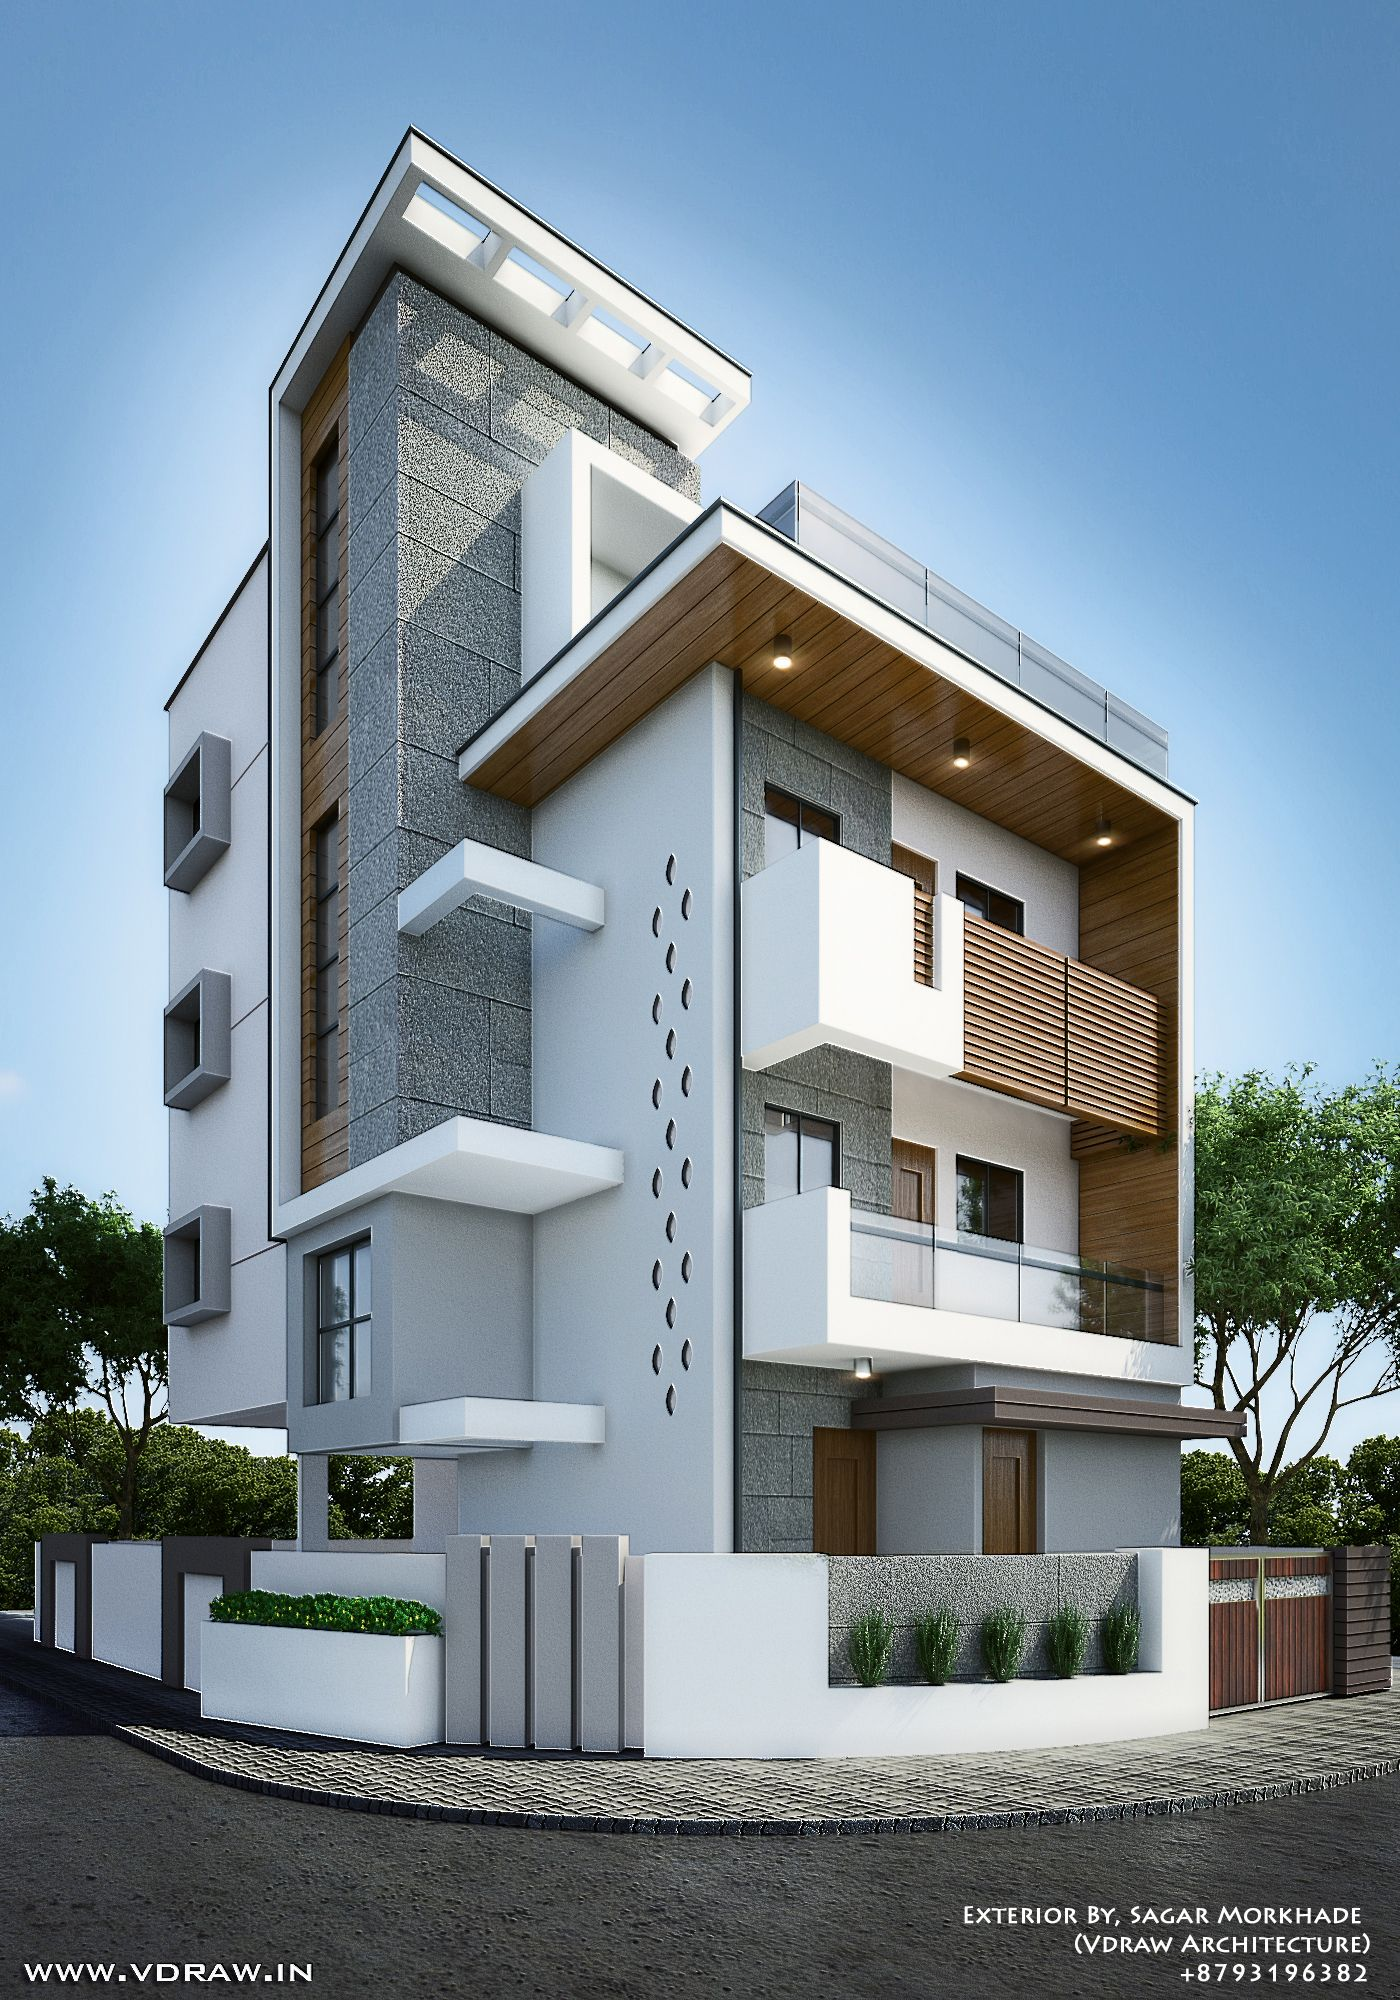 Home Exterior Design 5 Ideas 31 Pictures: Exterior By, Sagar Morkhade (Vdraw Architecture